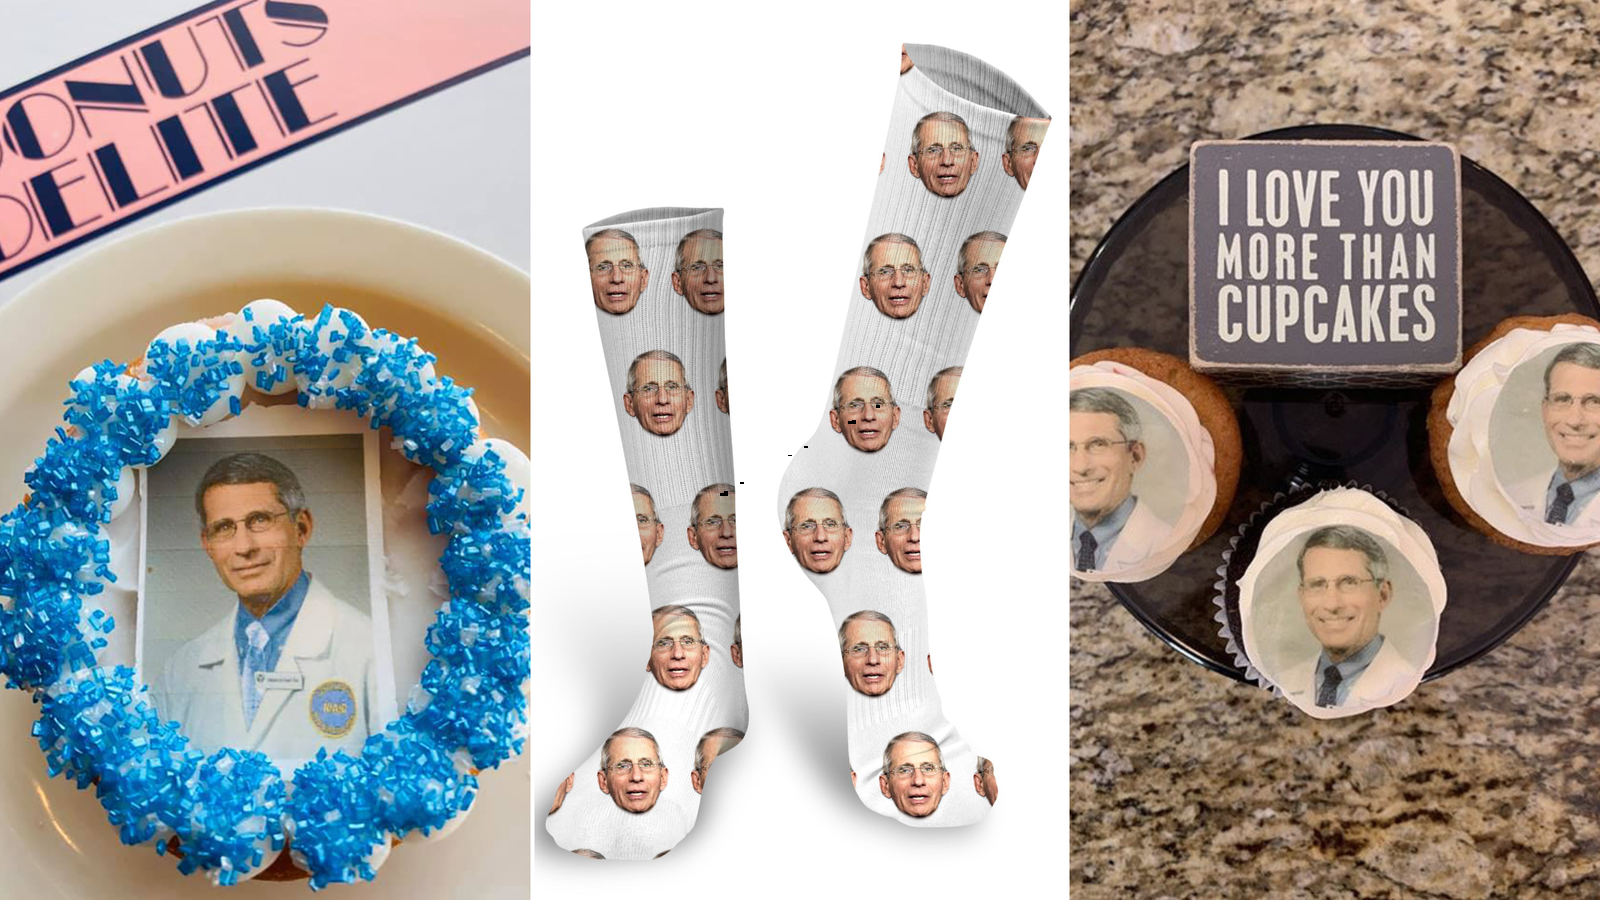 Picture of Dr. Fauci donuts, socks and cupcakes